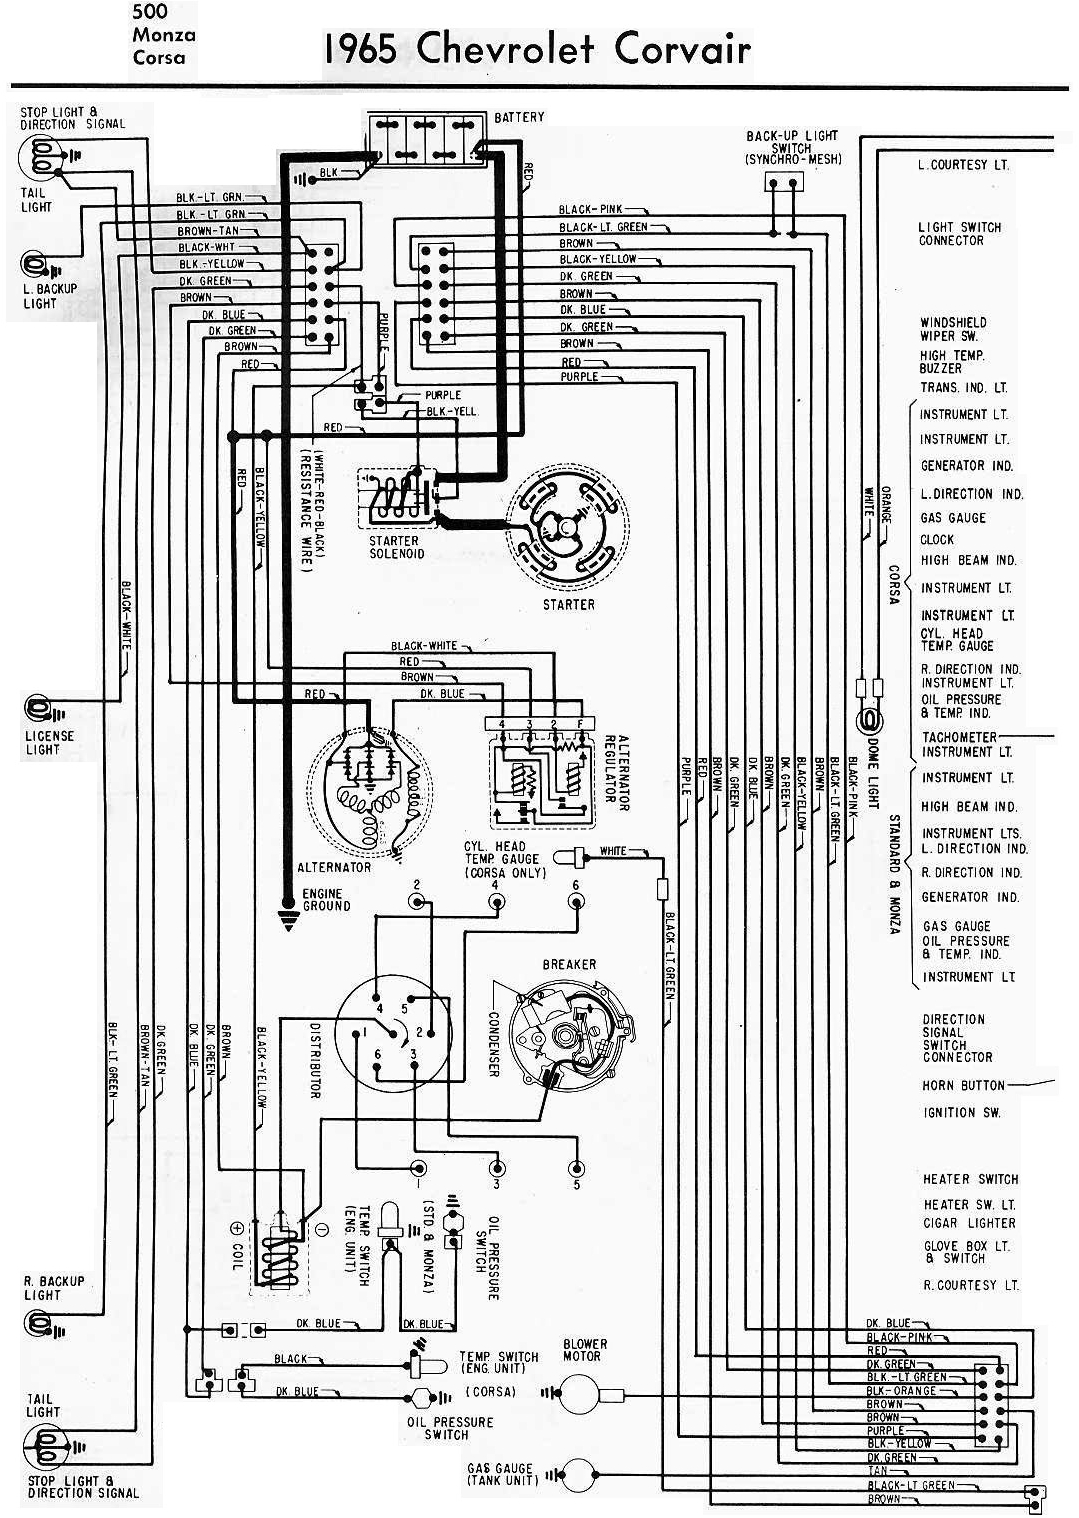 Chevy Ignition Coil Wiring Diagram Well Piping May 2011 | All About Diagrams